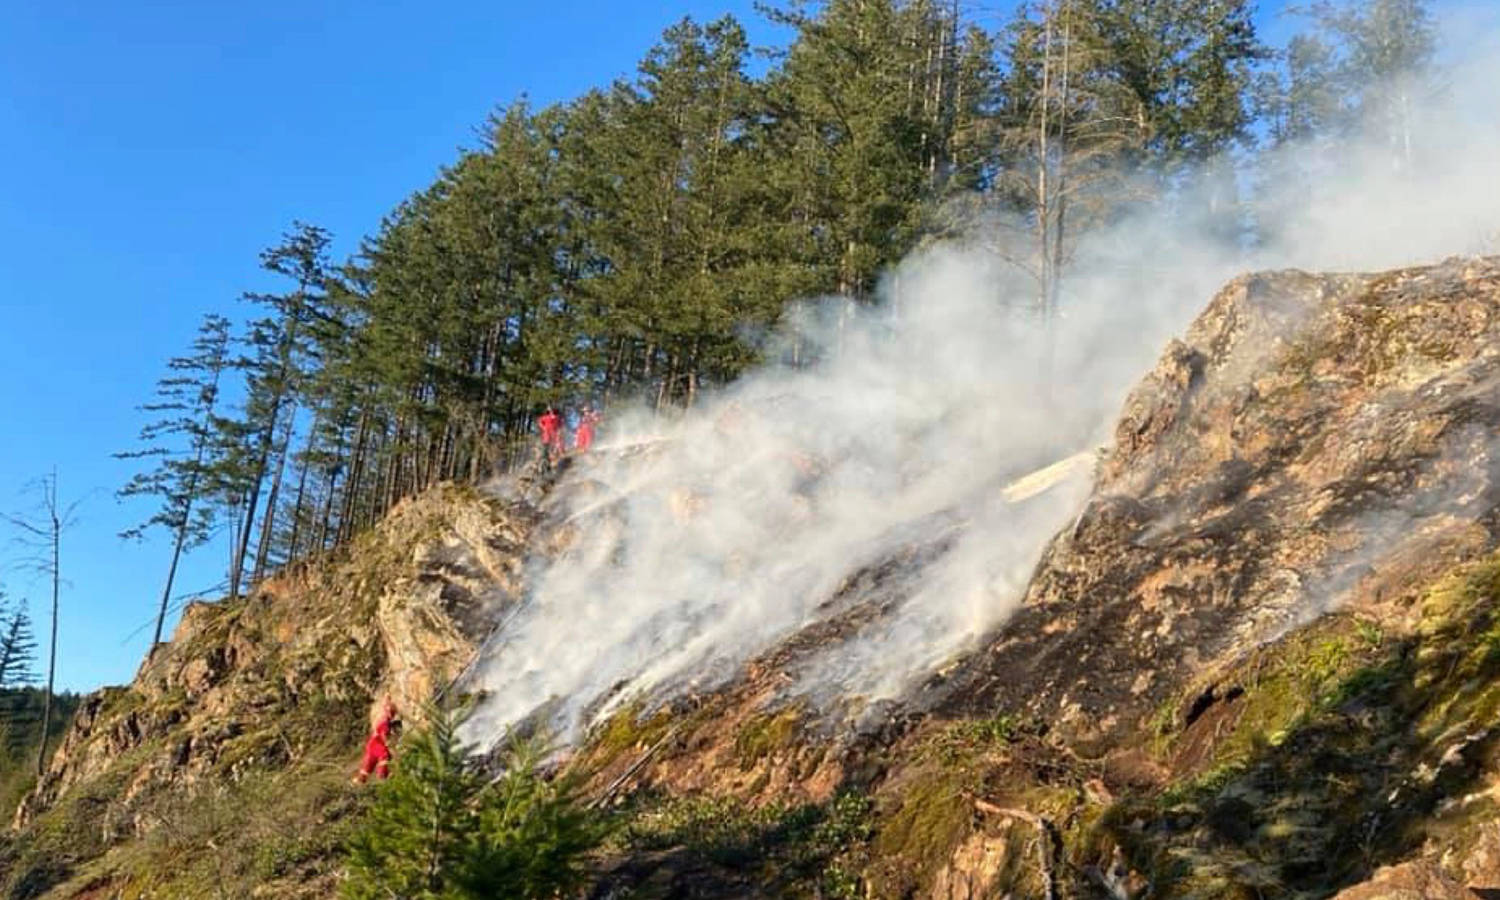 Firefighters battled a wildfire on Mount Woodside near Harrison Mills on Wednesday, April 14. Seabird Island and B.C. Wildfire Service firefighters helped keep the blaze from spreading to brush, keeping it to roughly half a hectare. (Photo/Agassiz Fire Department)